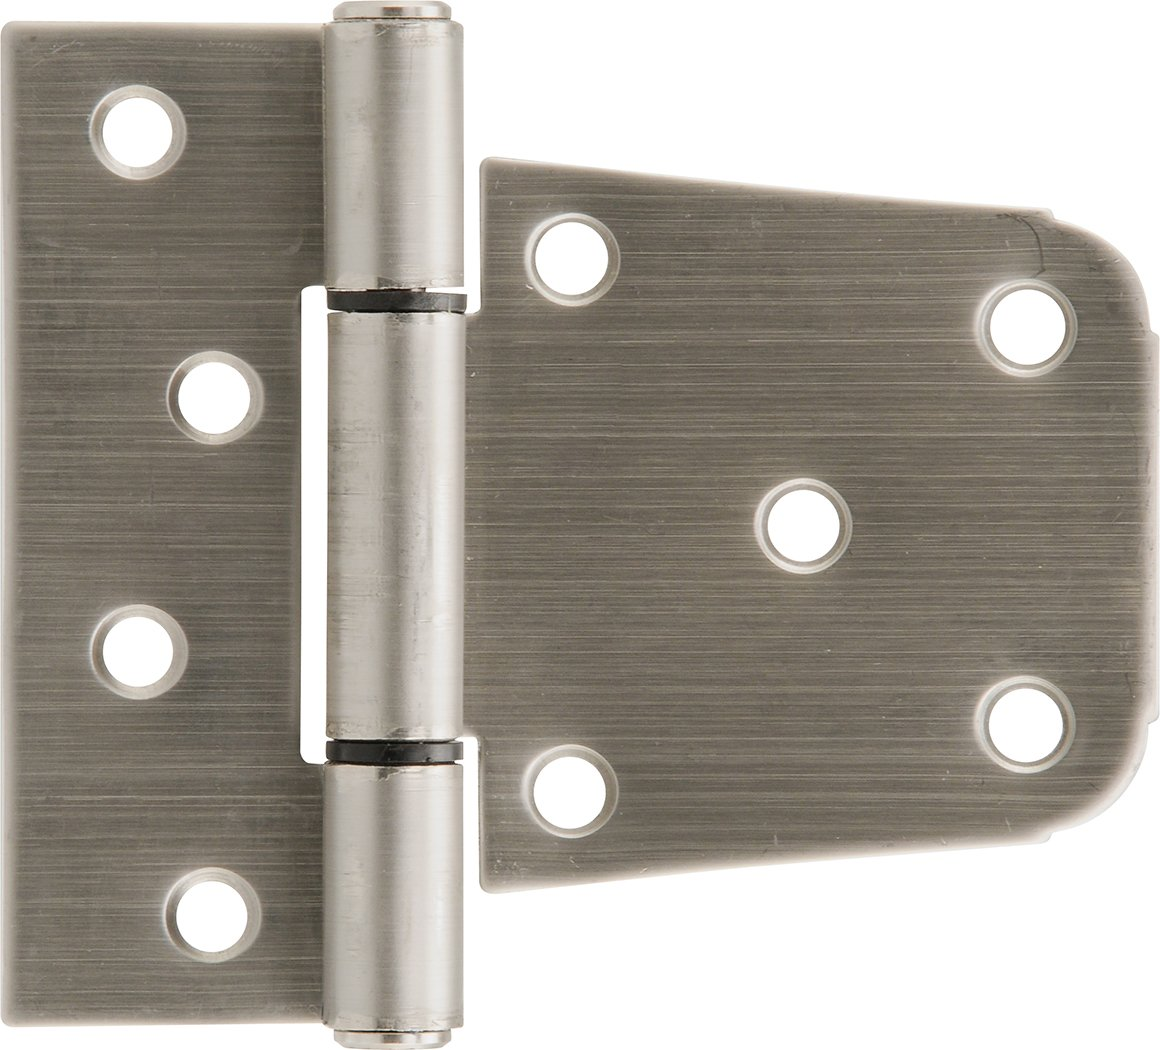 The Hillman Group The Hillman Group 853354 3-1/2'' Heavy Duty T-Hinge - Stainless Steel - For 2x4 or 4x4 Post Applications 1-Pack